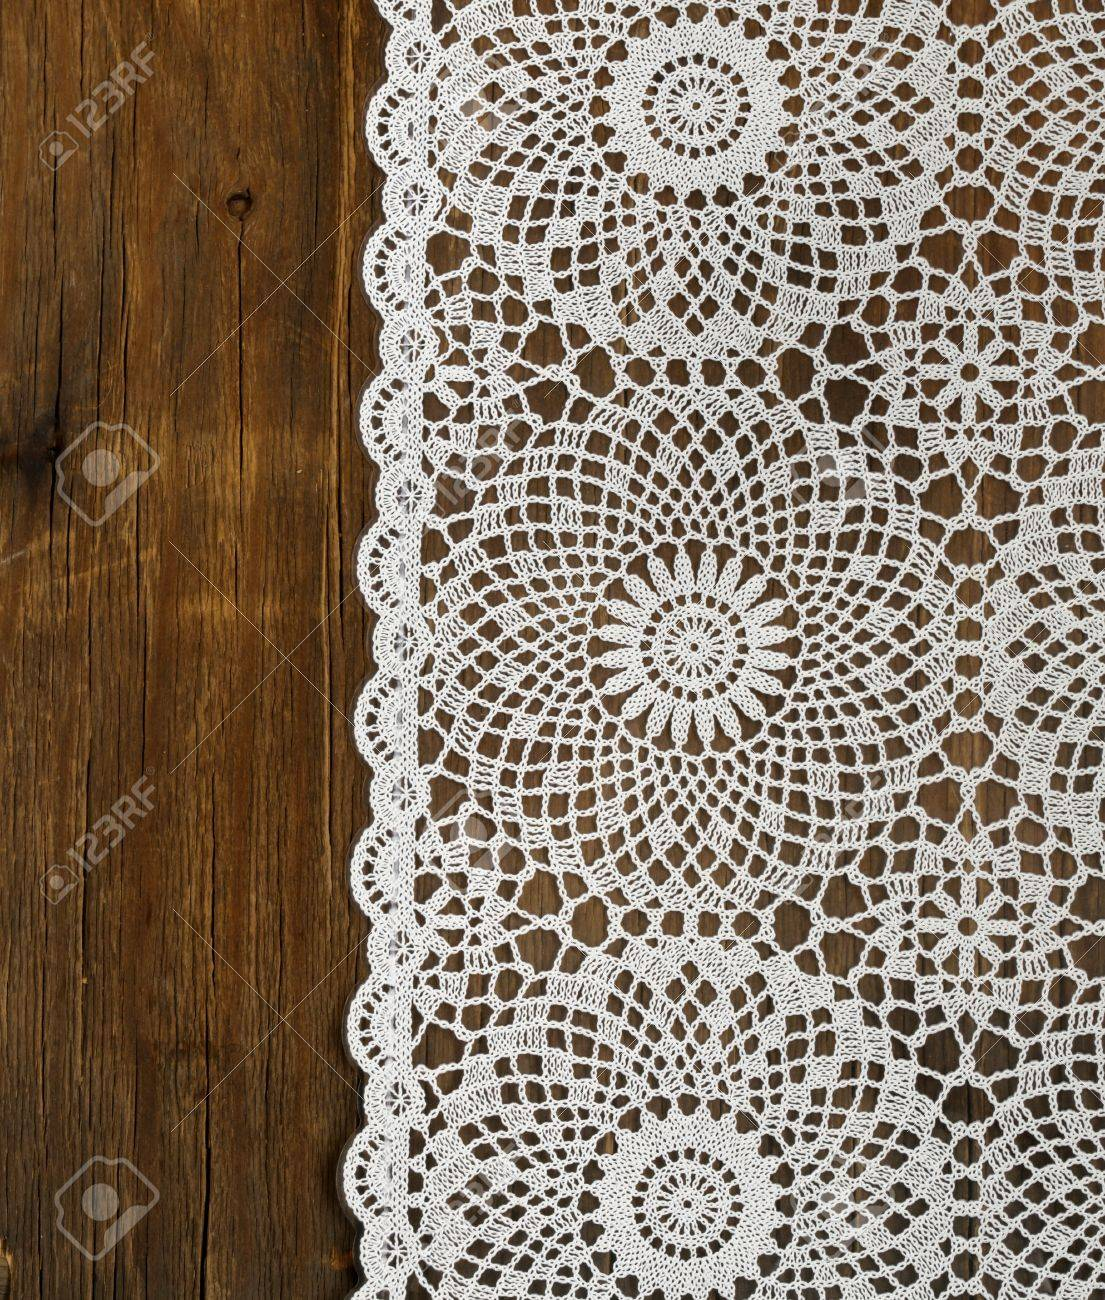 Delightful Lace Tablecloths: Wooden Background With White Lace Napkin Stock Photo